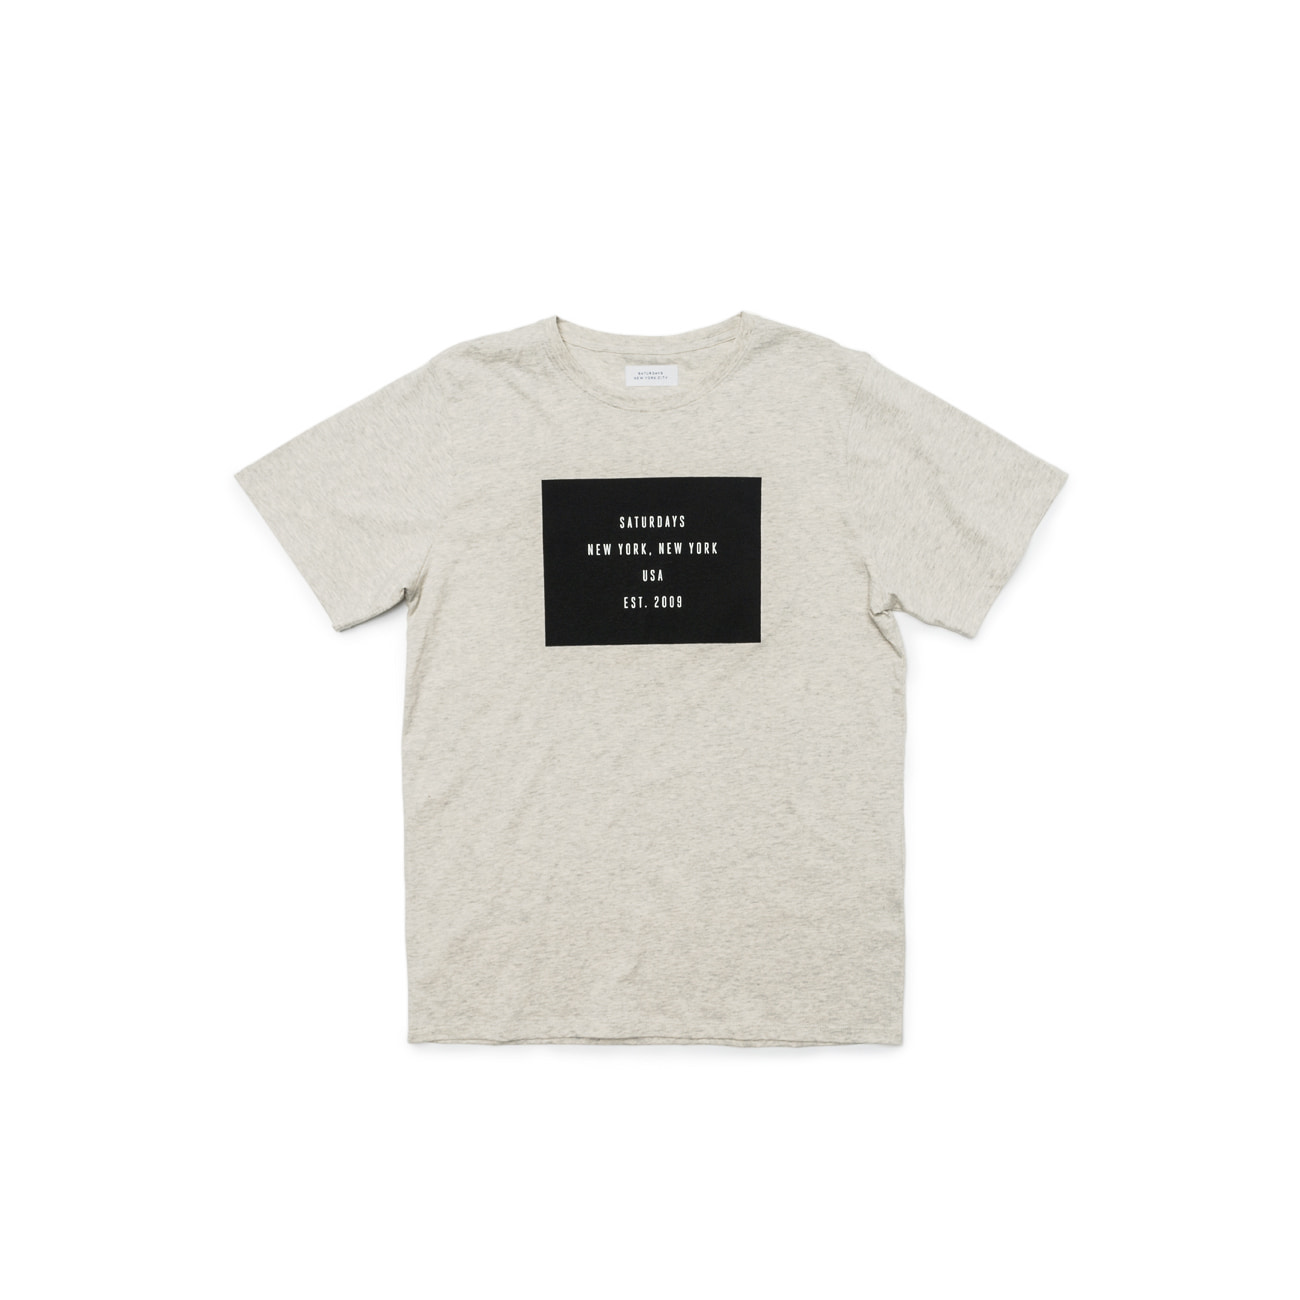 Established Box S/S Tee